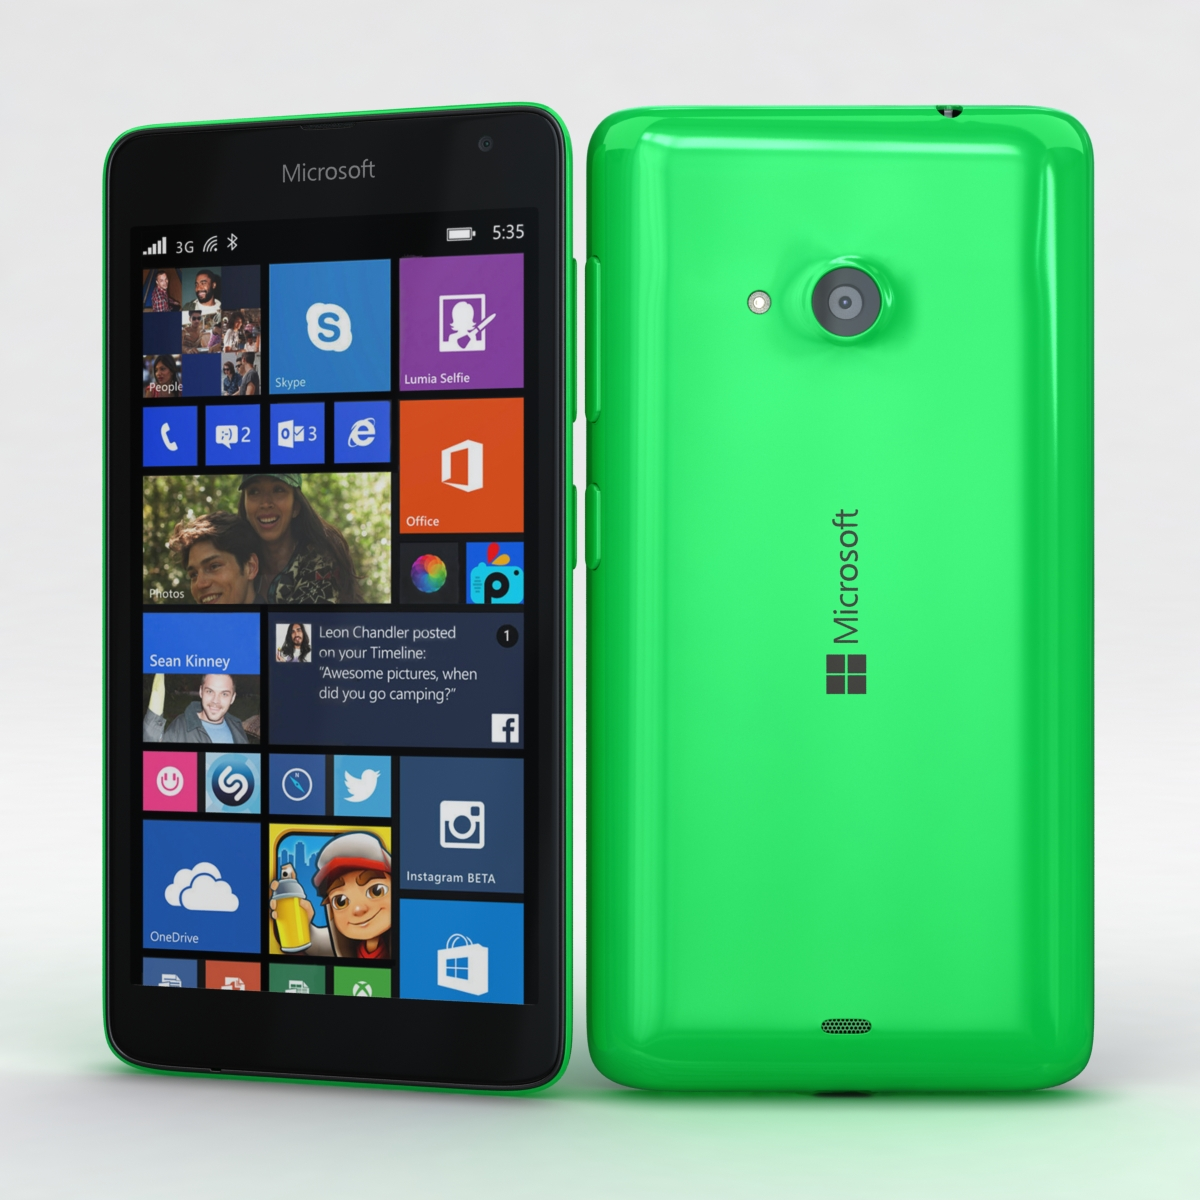 microsoft lumia 535 and dual sim green 3d model 3ds max fbx c4d obj 204164